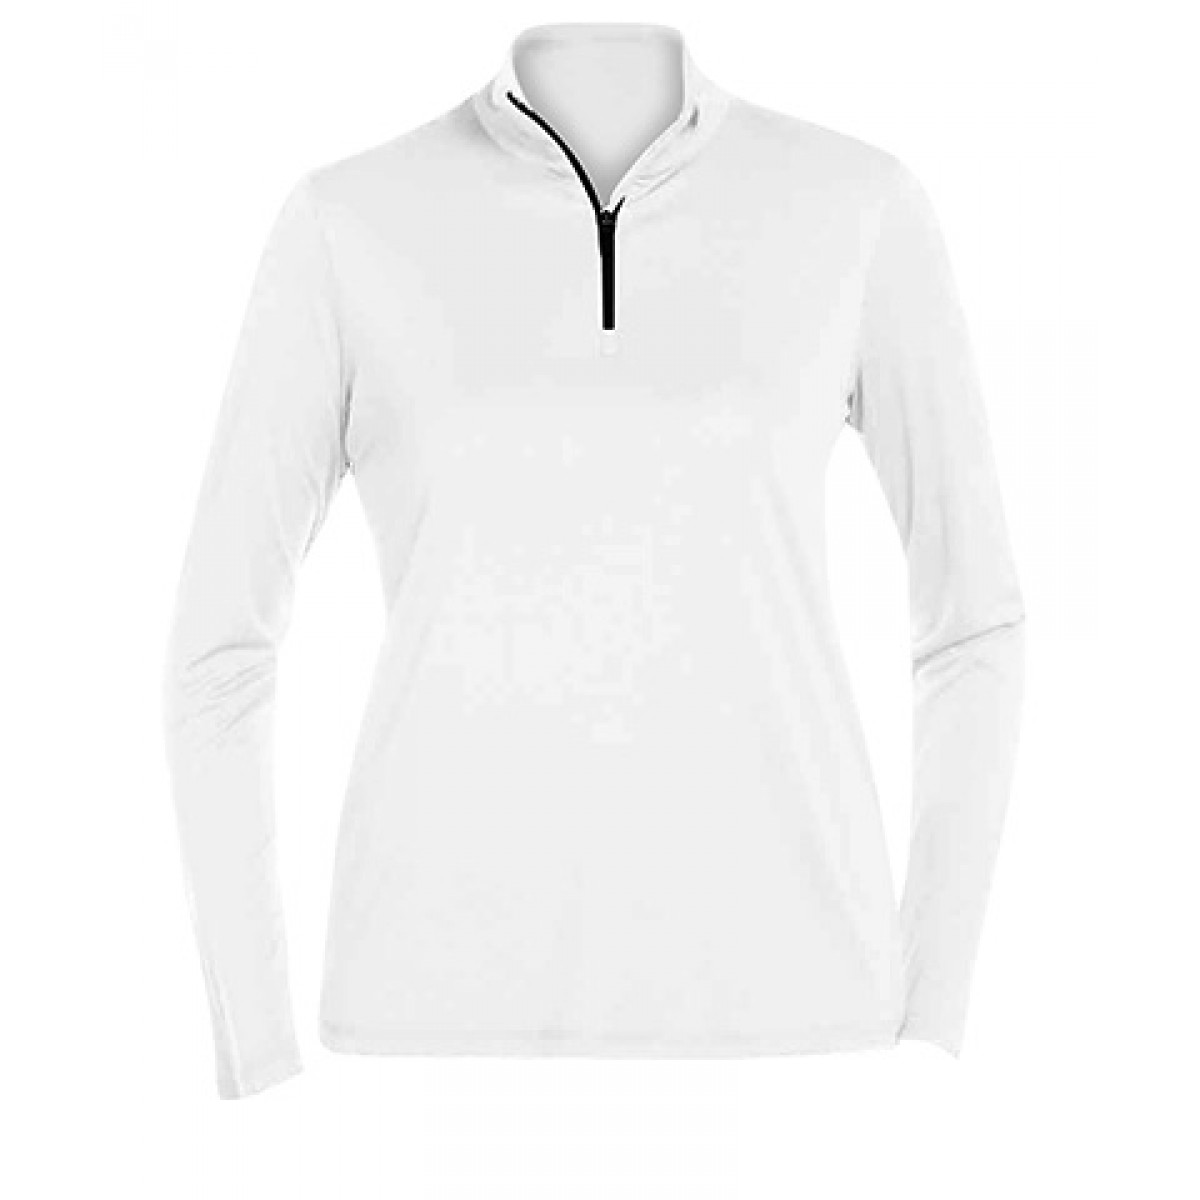 Ladies' Quarter-Zip Lightweight Pullover-White-L